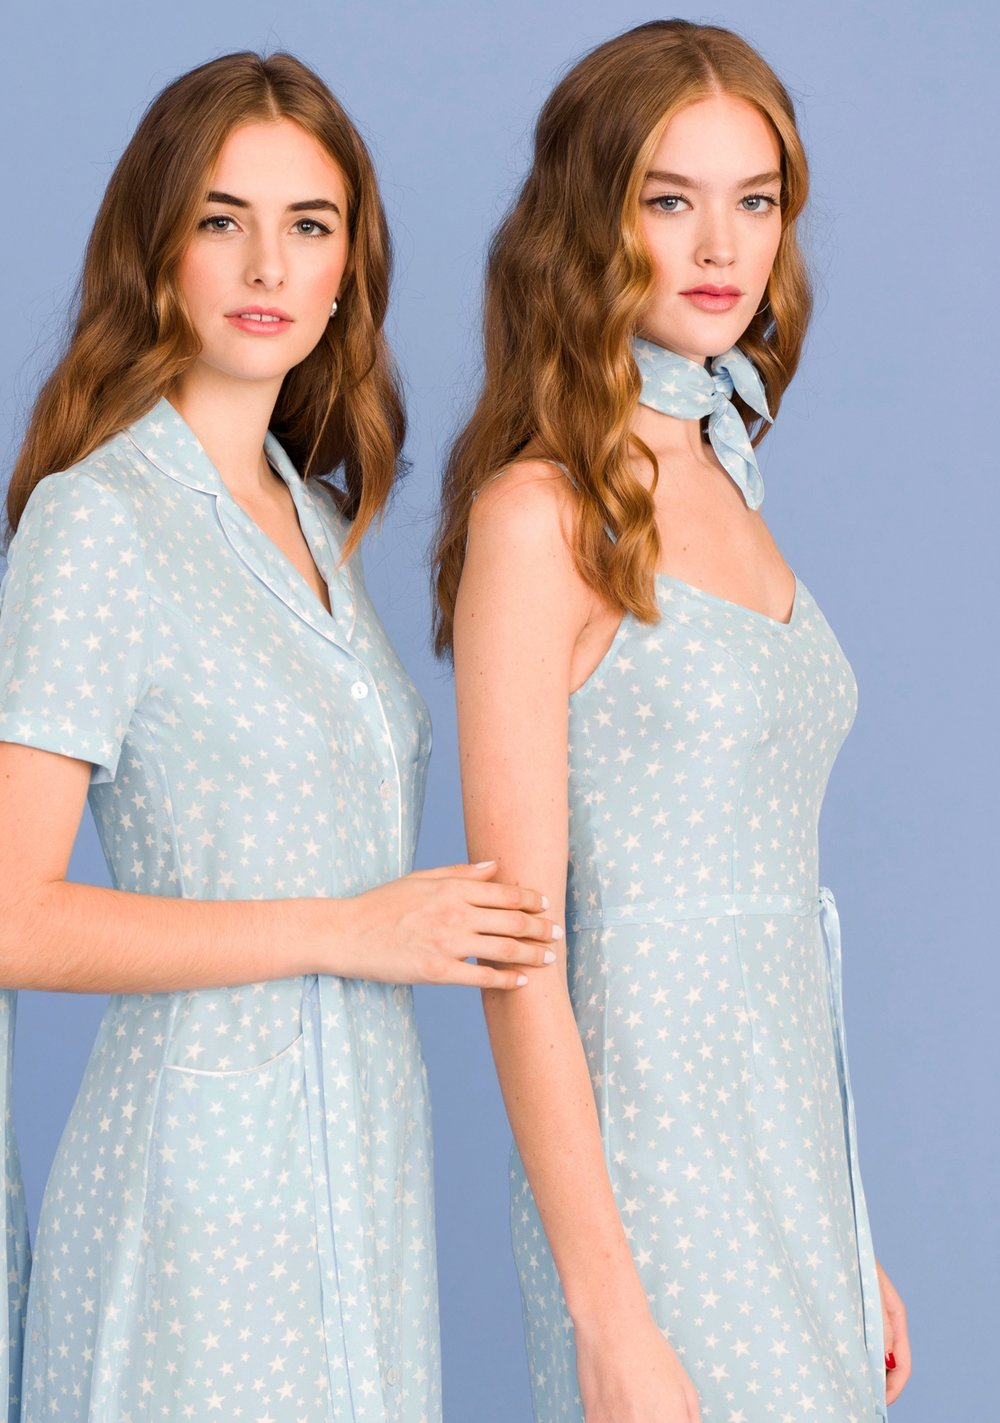 PALE BLUE STARS - SHOP NOW